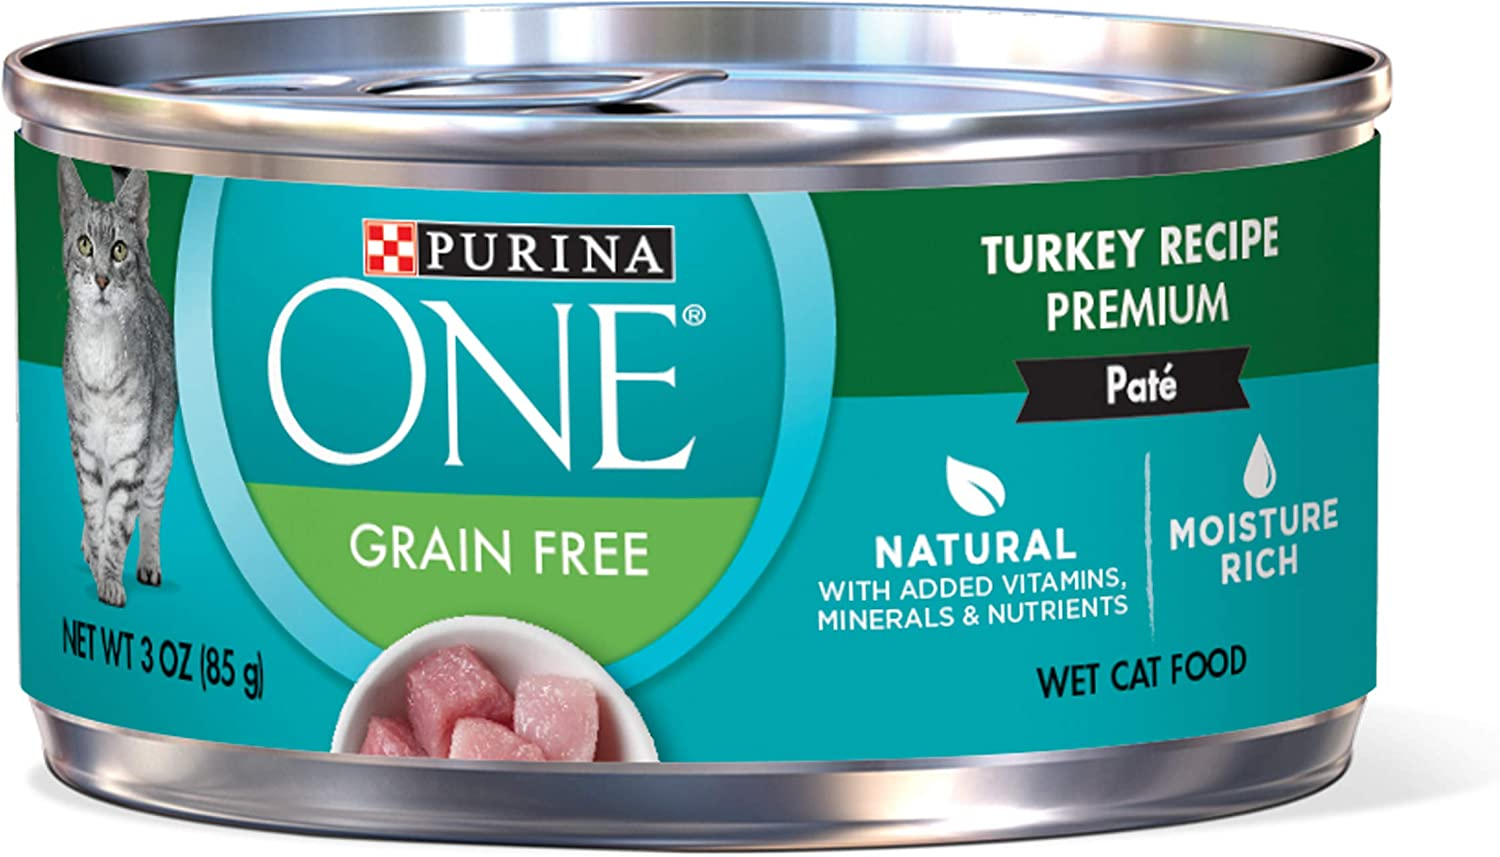 Purina ONE Natural, High Protein, Grain Free Pate Wet Cat Food, Turkey Recipe - (24) 3 oz. Pull-Top Cans